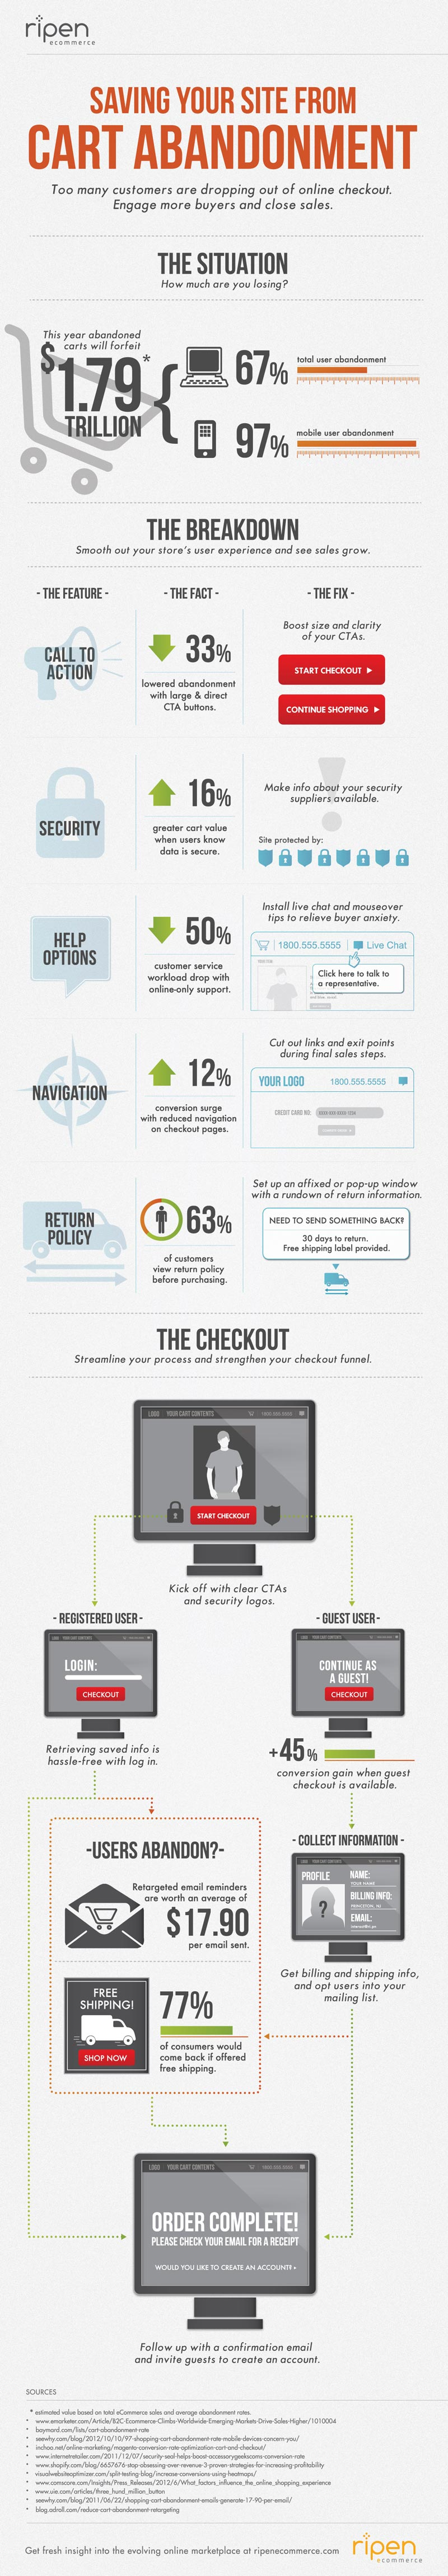 Cart Abandonment Best Practices-Infographic